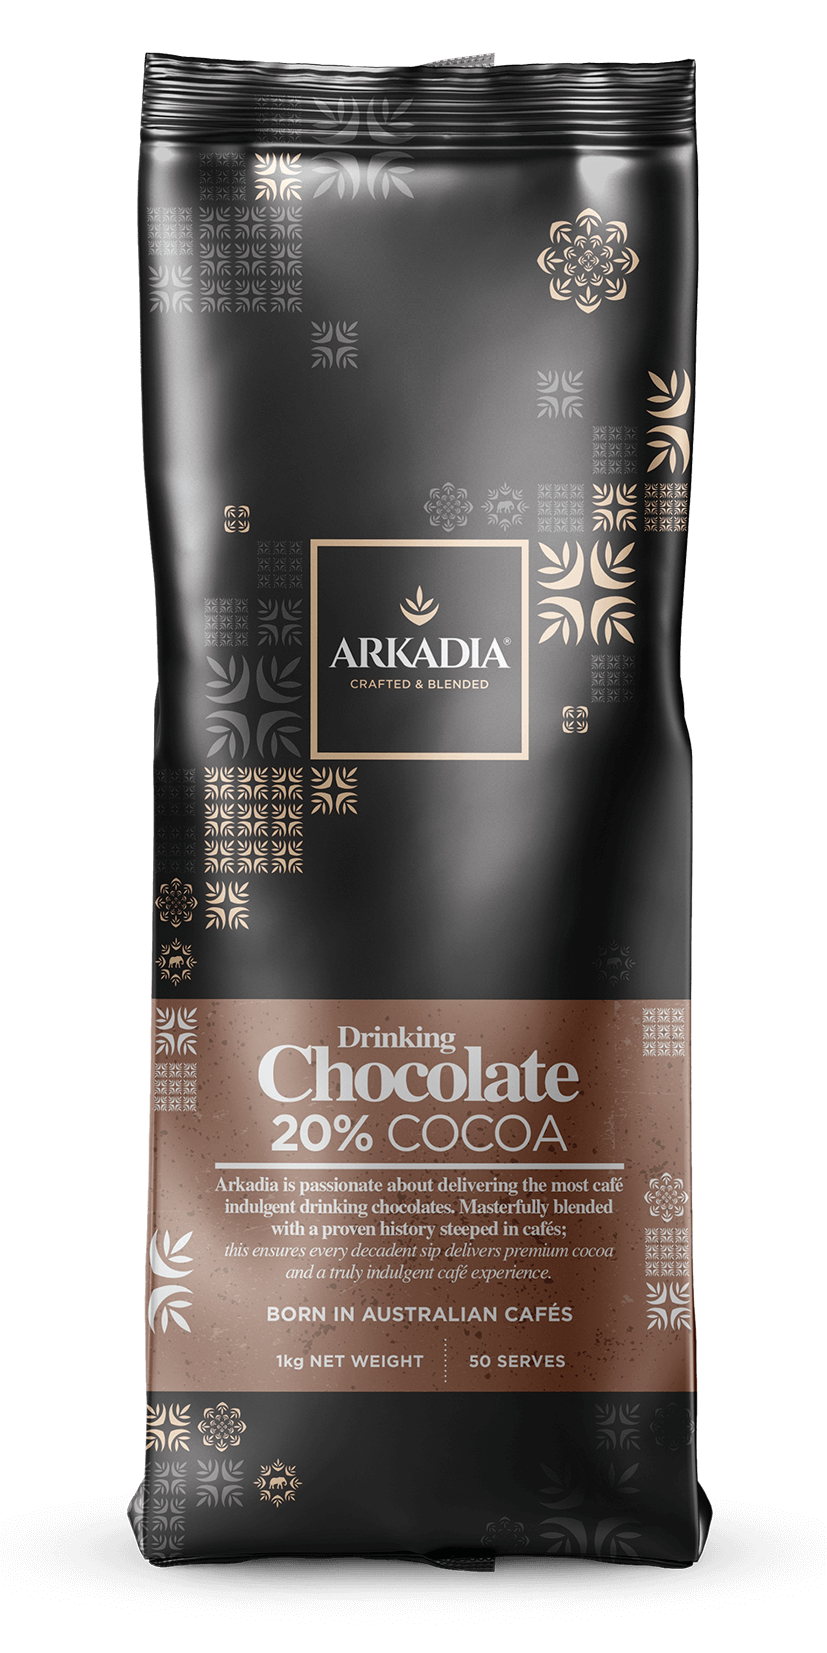 Arkadia Drinking Chocolate 20% Cocoa (Cappuccino Powder) 1kg